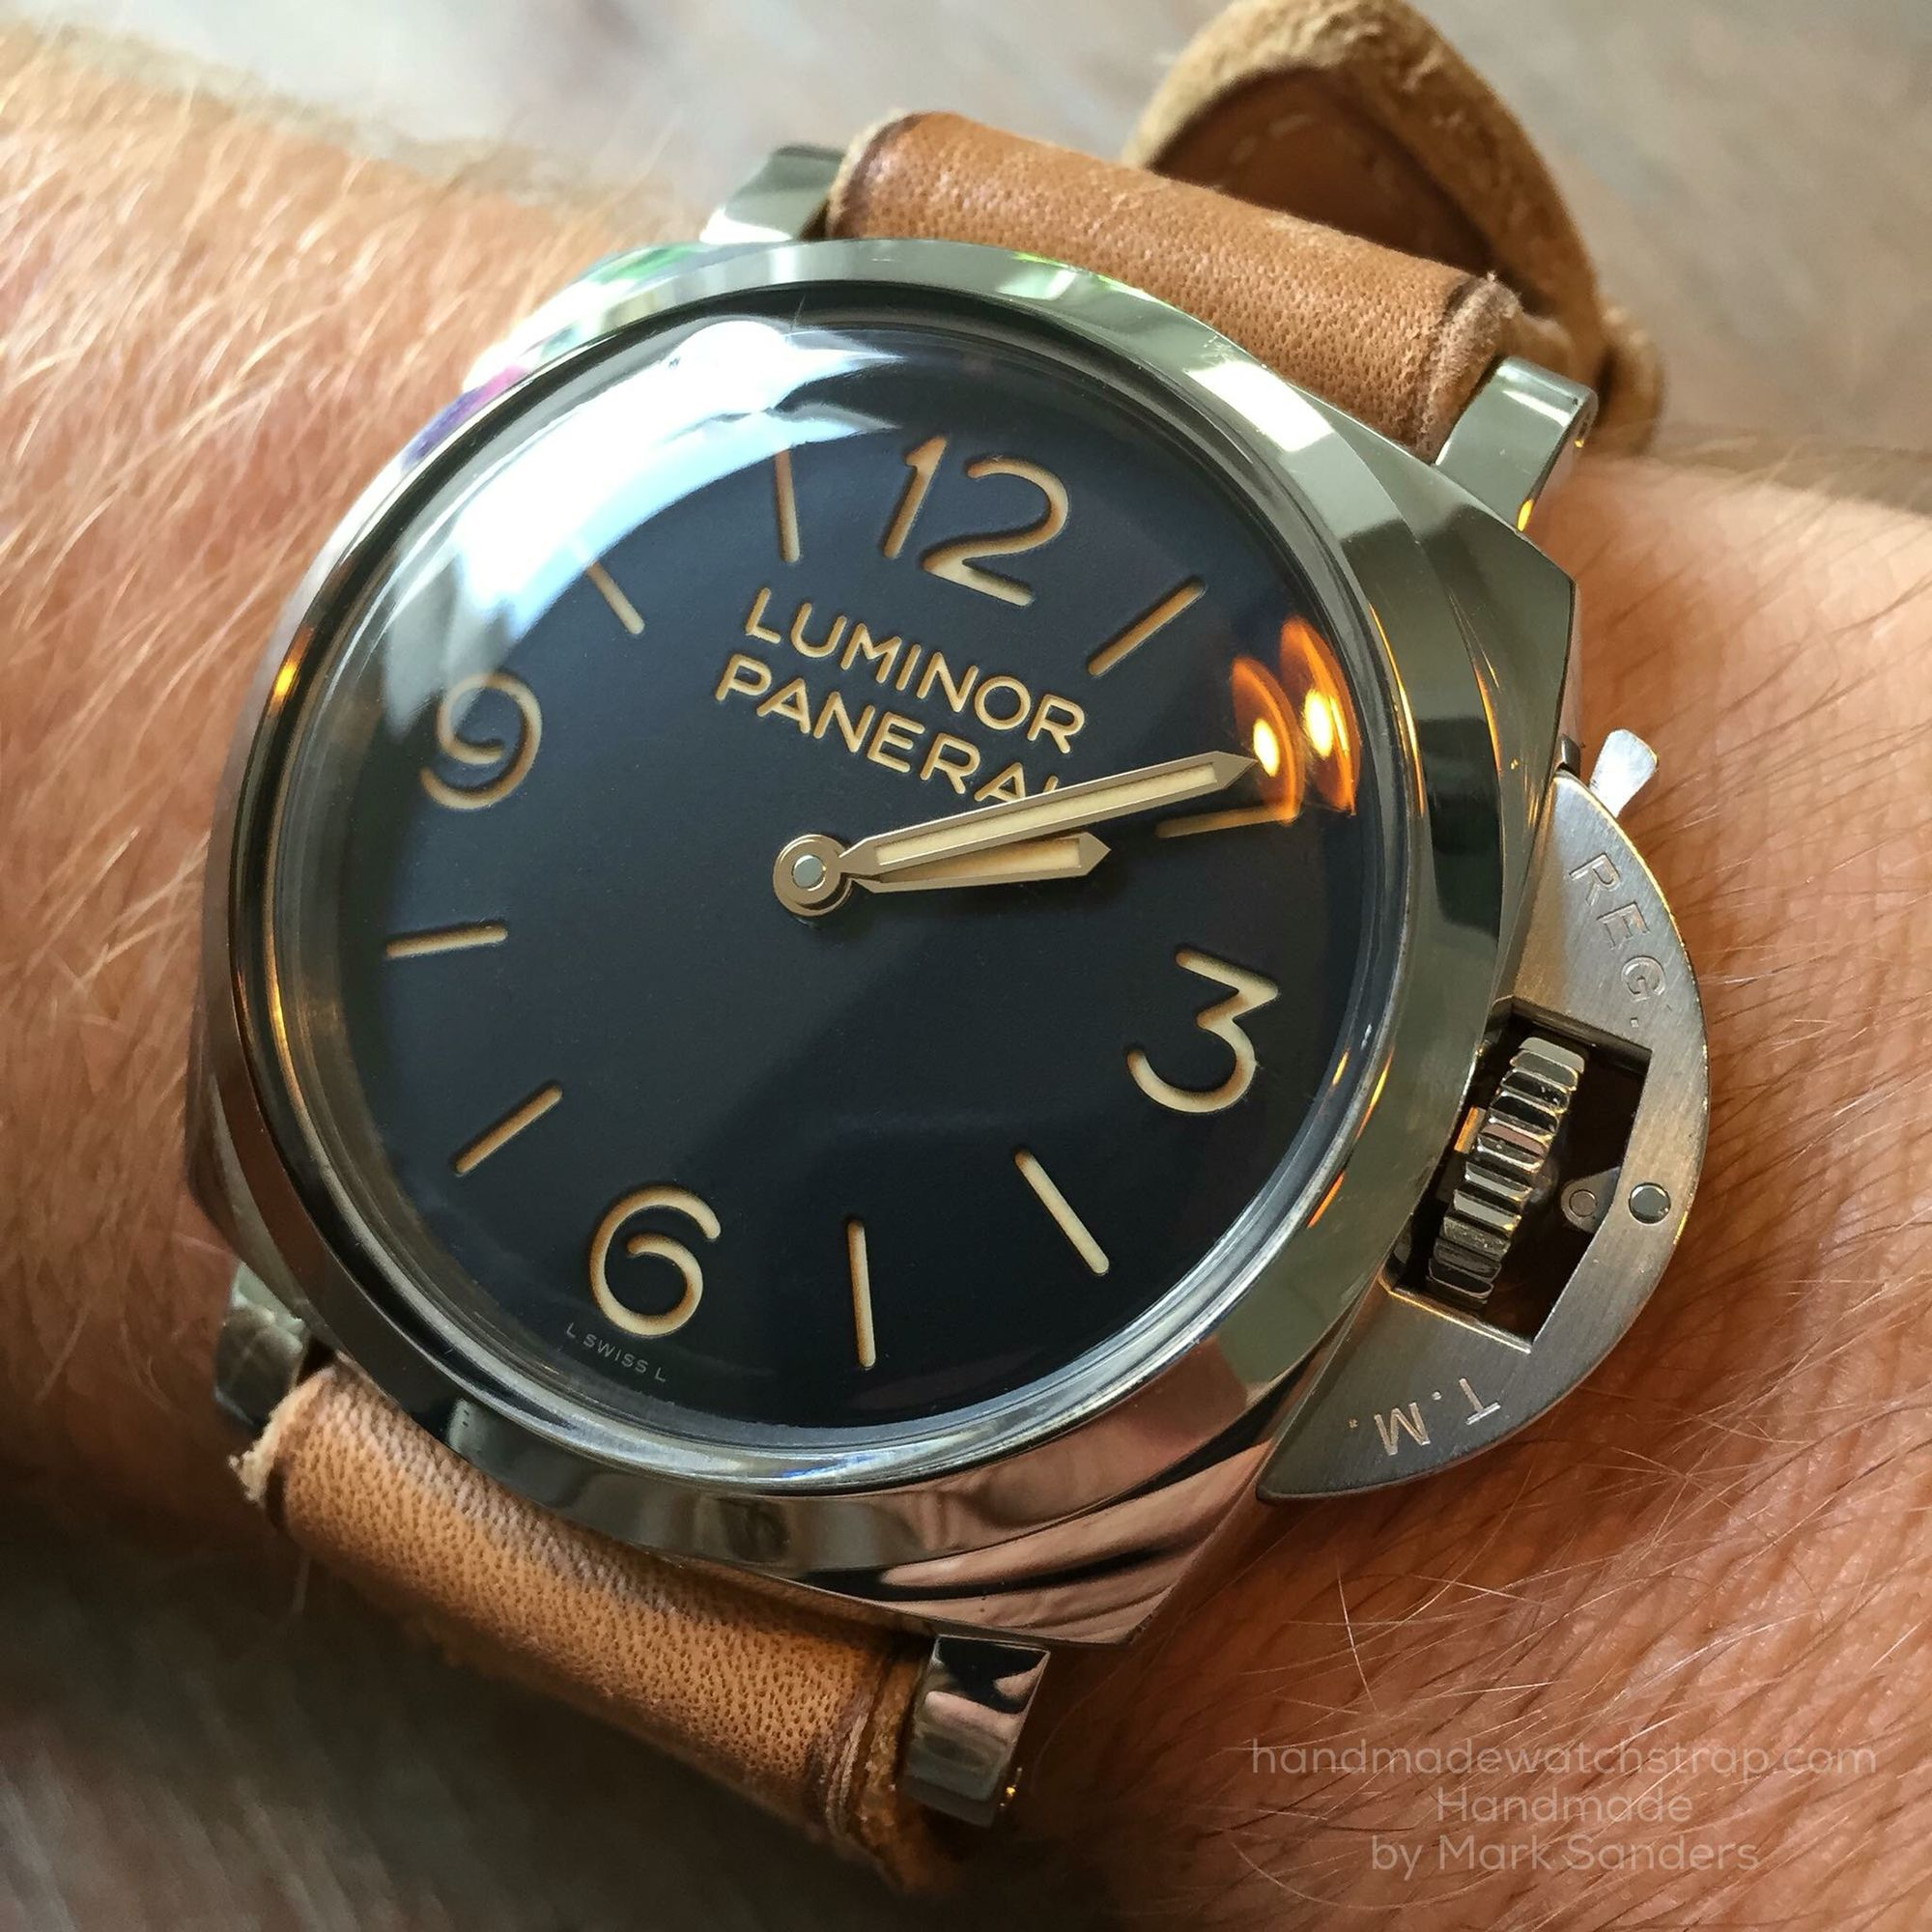 boring storied right watches techcrunch of fake train left t or like such panerai watchmaker into luminor movement after the real put attack superfakes wouldn all a would it watch